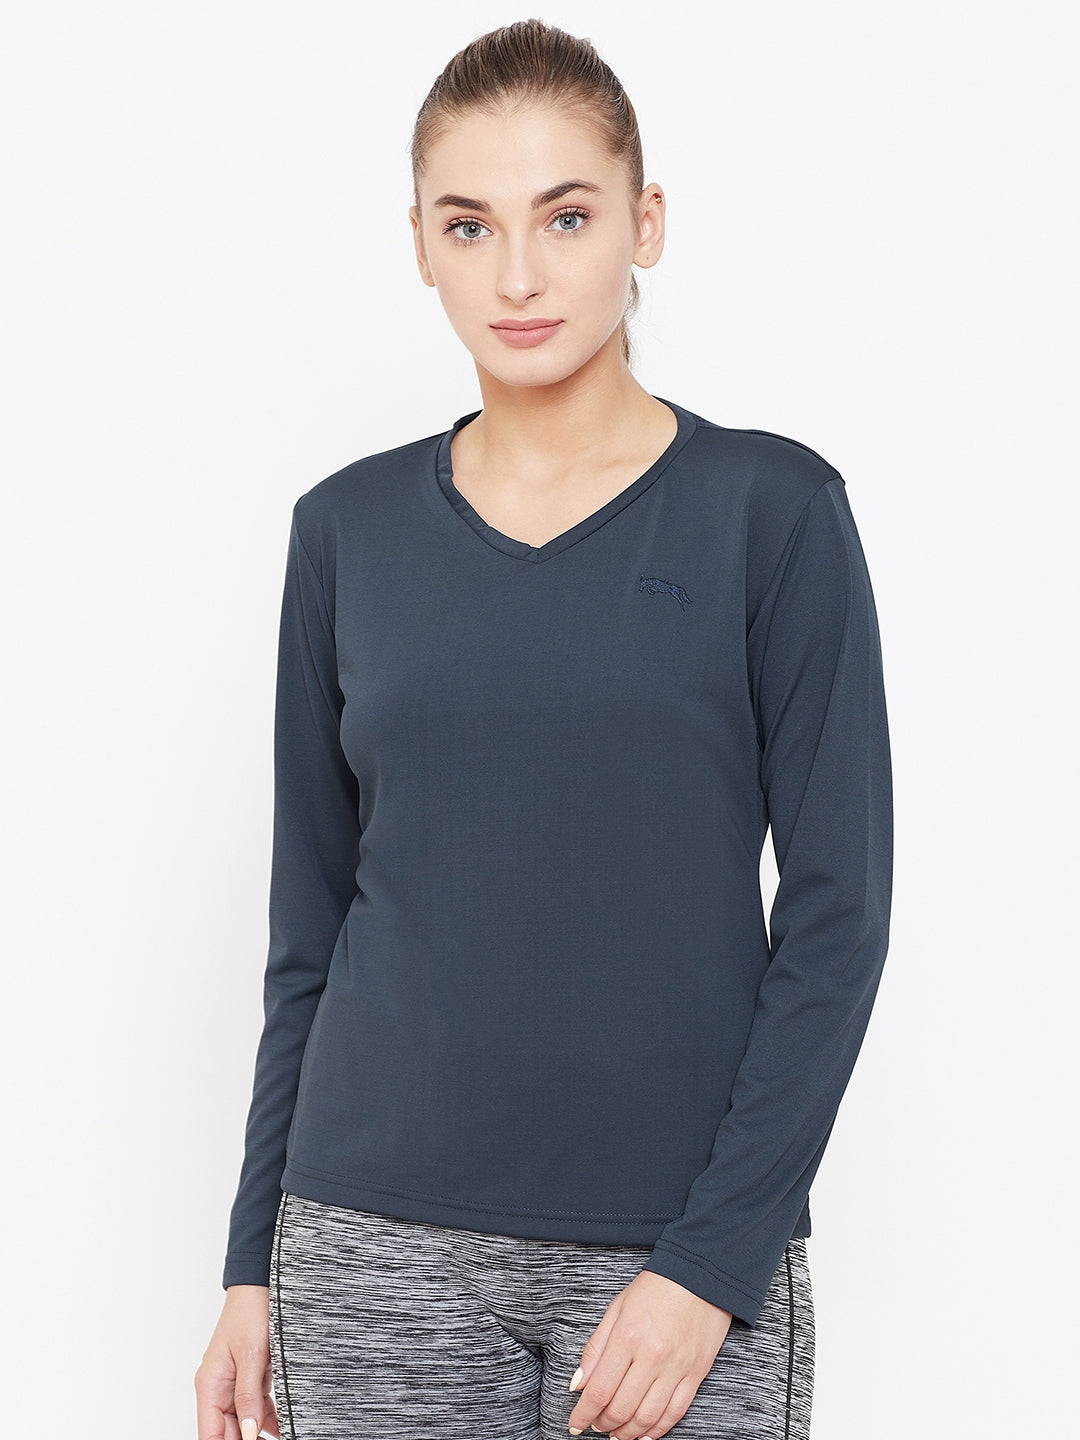 Women Navy Blue Active Wear V-Neck T-shirt